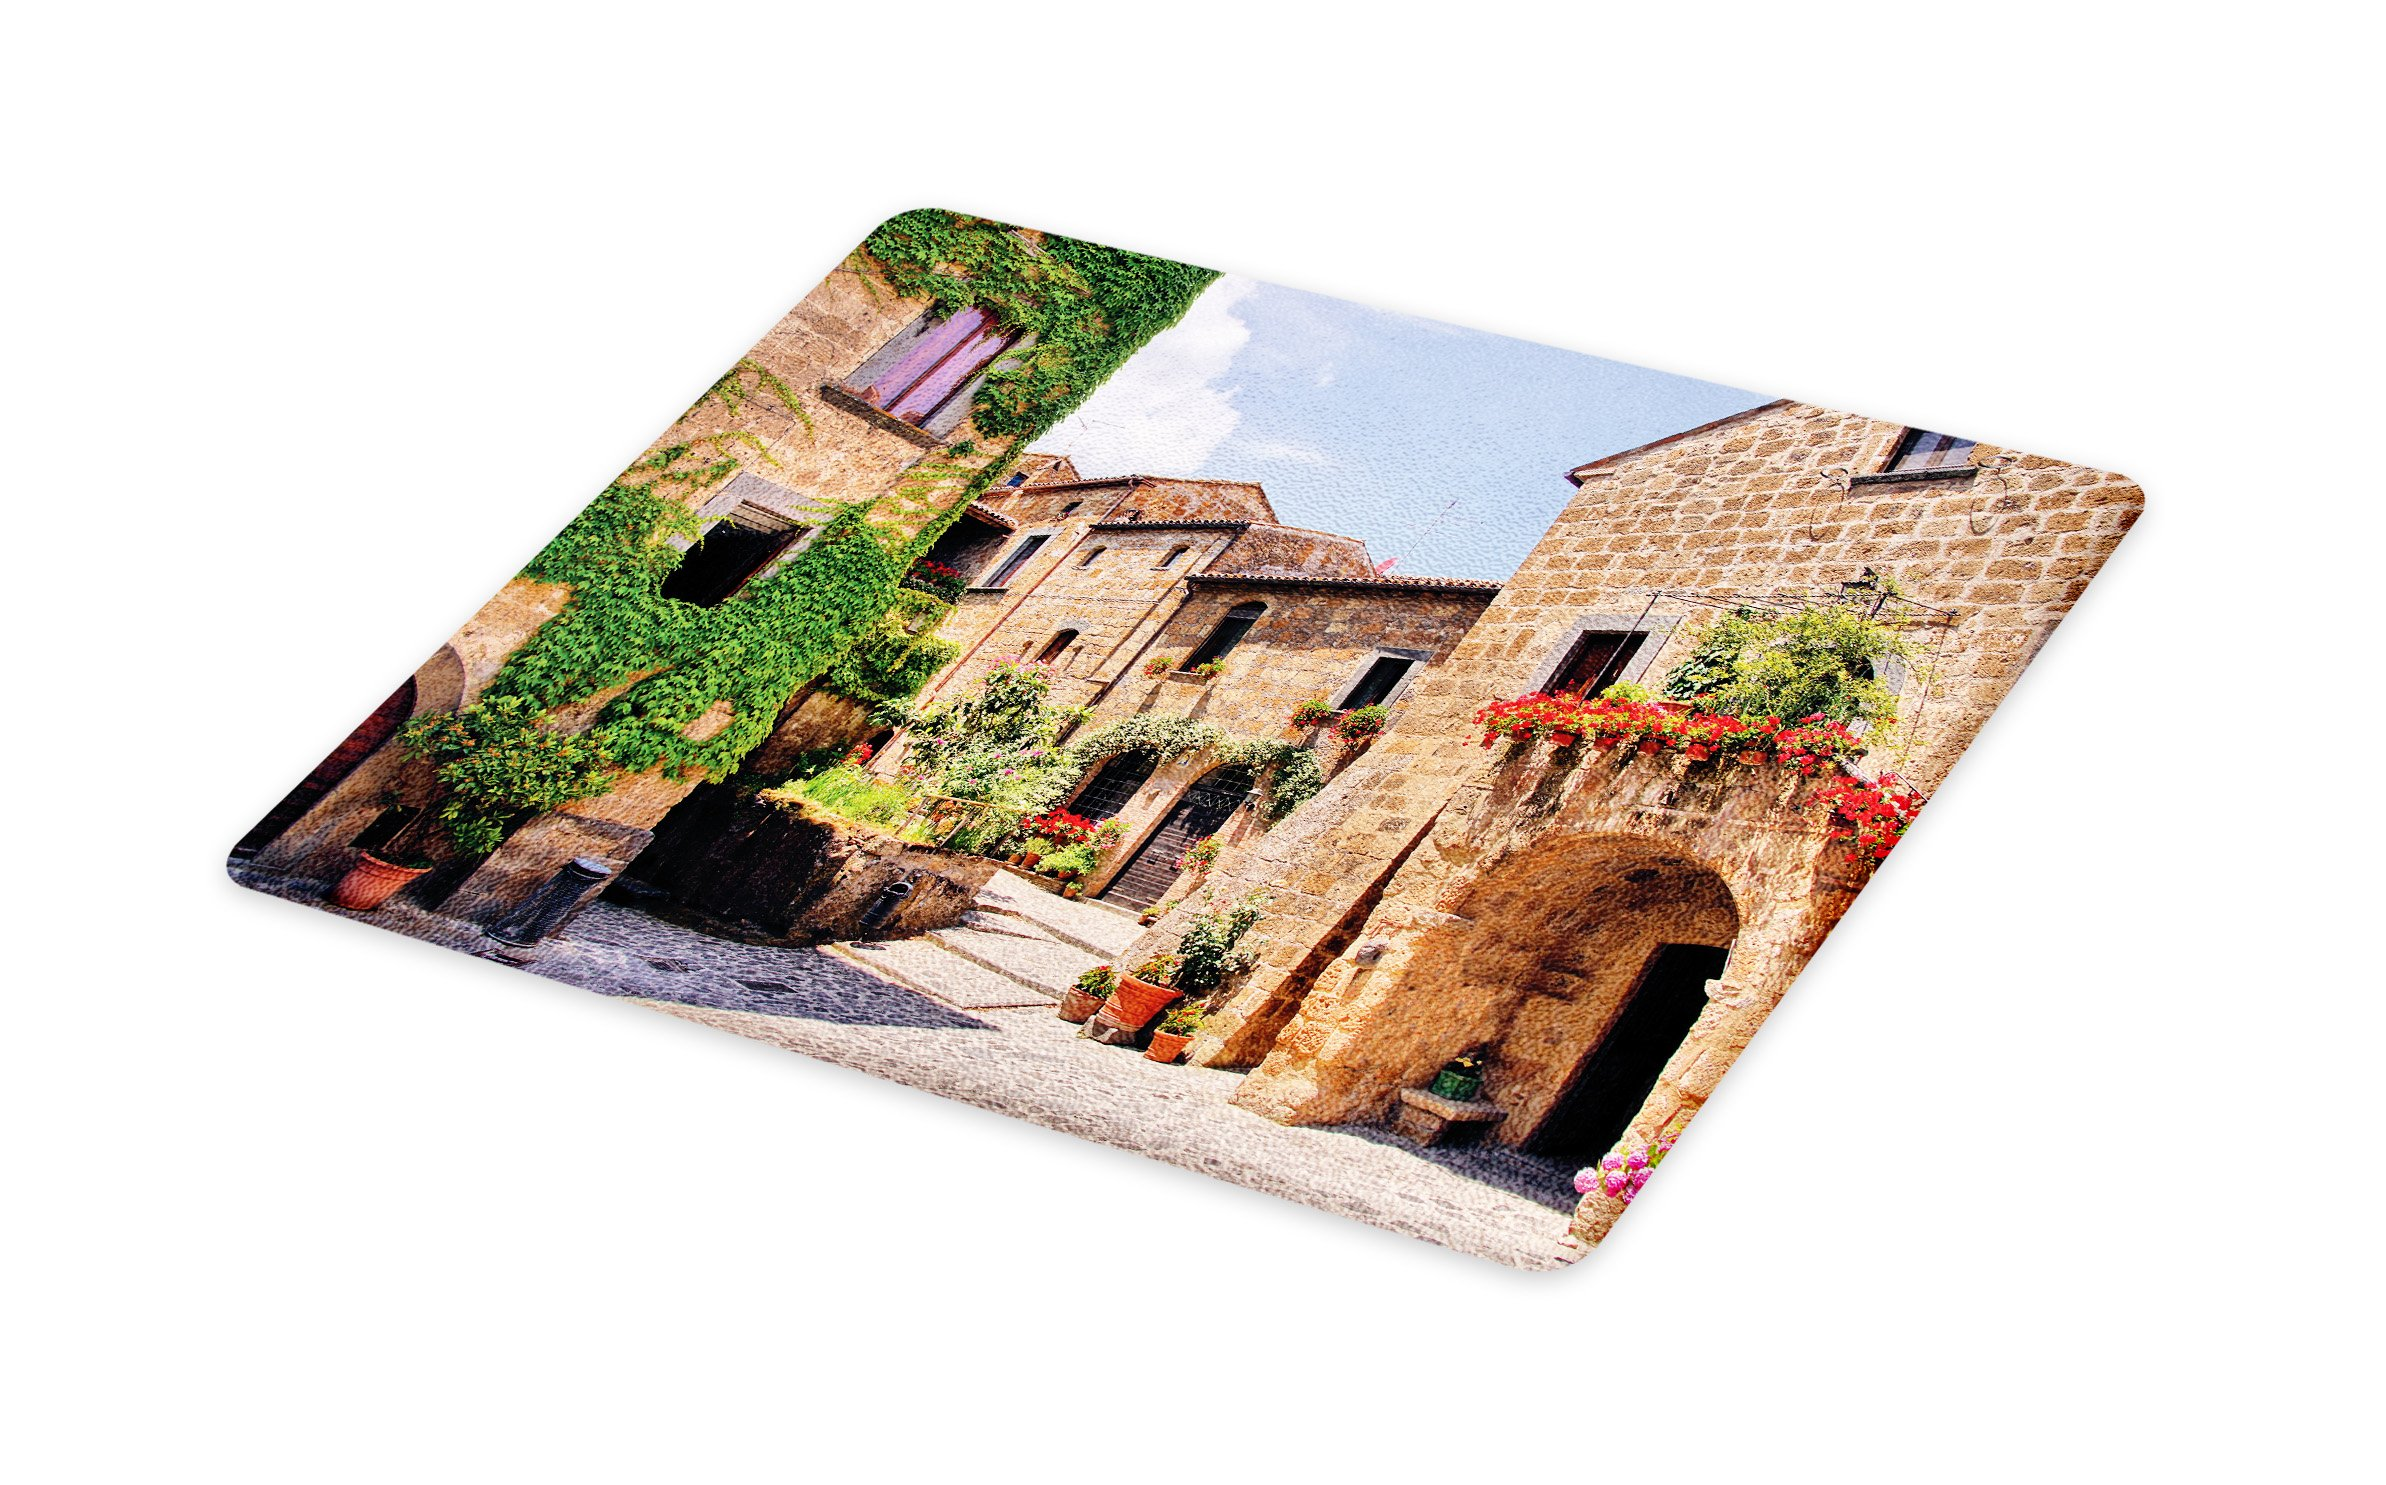 Lunarable Tuscany Cutting Board, Italian Streets in Countryside with Traditional Brick Houses Old Tuscan Prints, Decorative Tempered Glass Cutting and Serving Board, Large Size, Multicolor